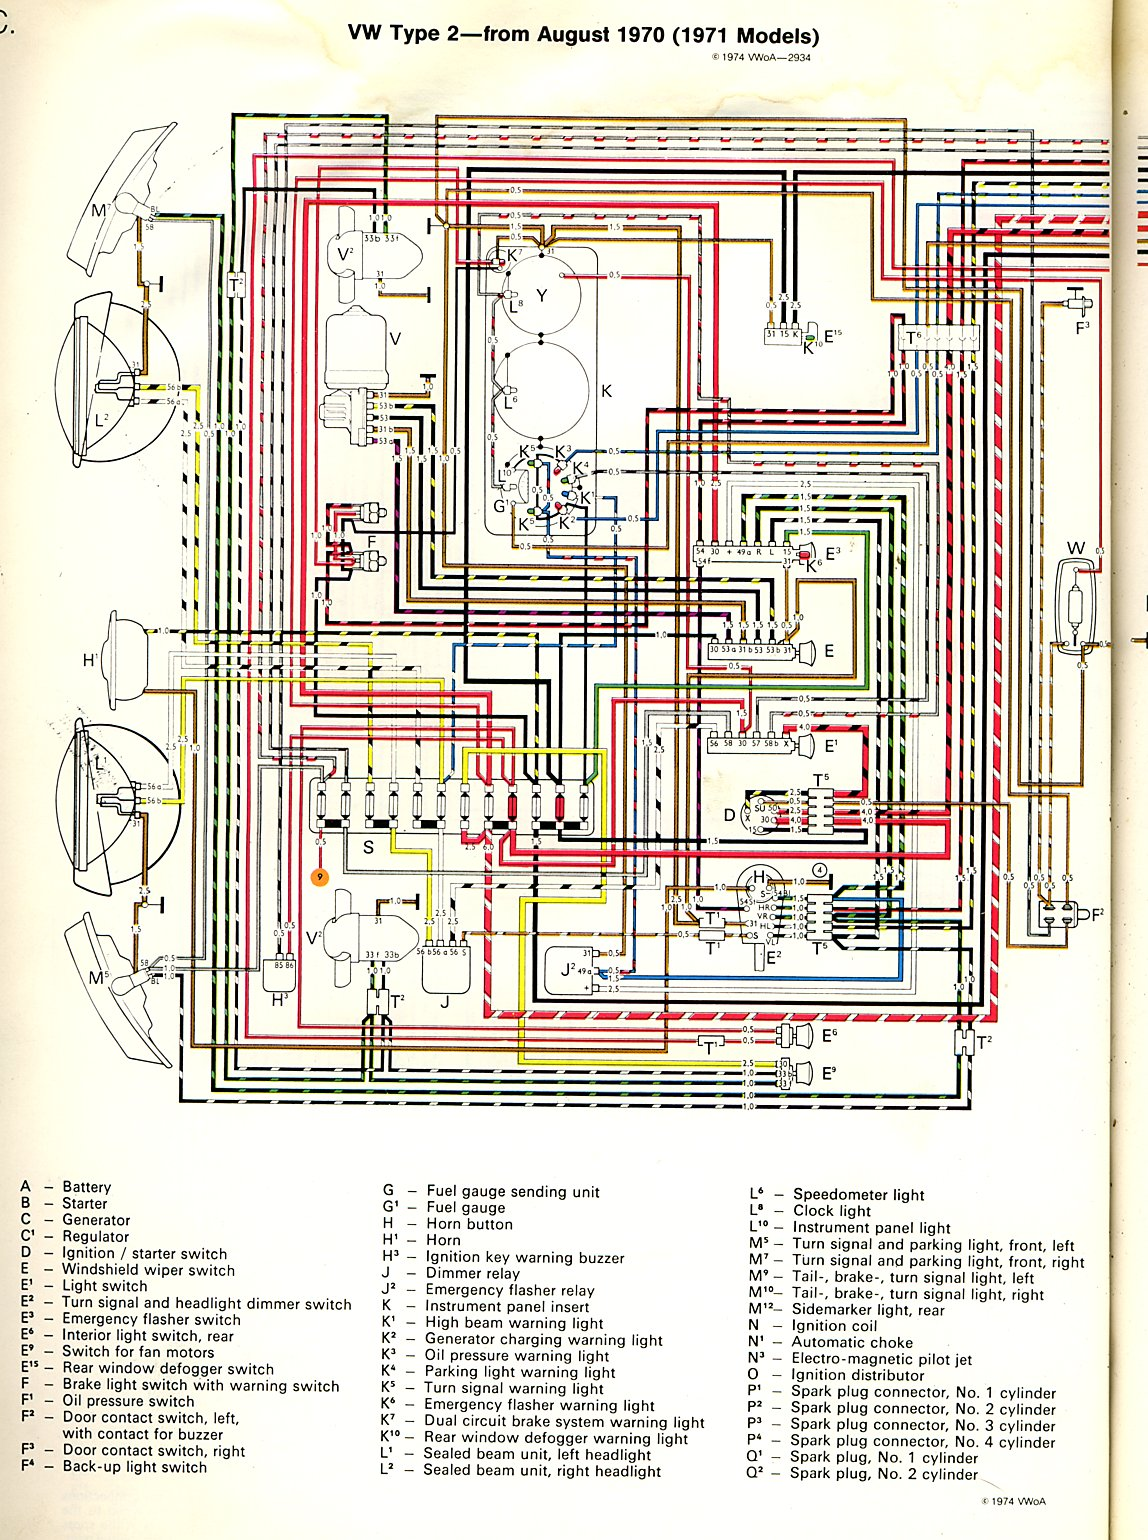 Type 2 Wiring Diagrams Light Switch With Fan